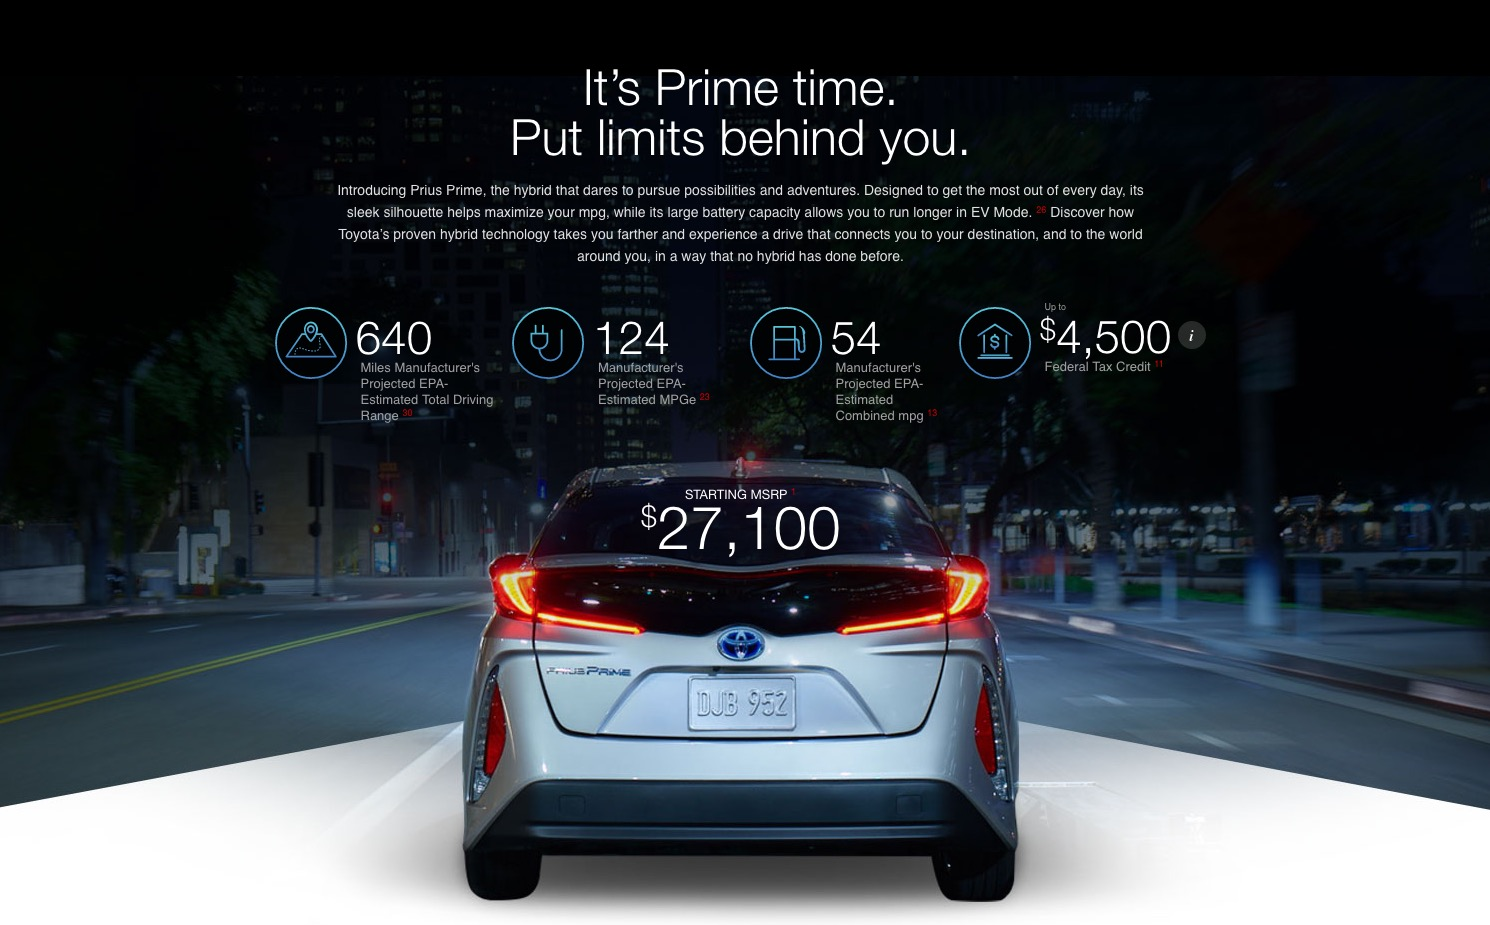 2017 toyota prius prime priced from 27 100 boasts 25 miles of ev range autoevolution. Black Bedroom Furniture Sets. Home Design Ideas